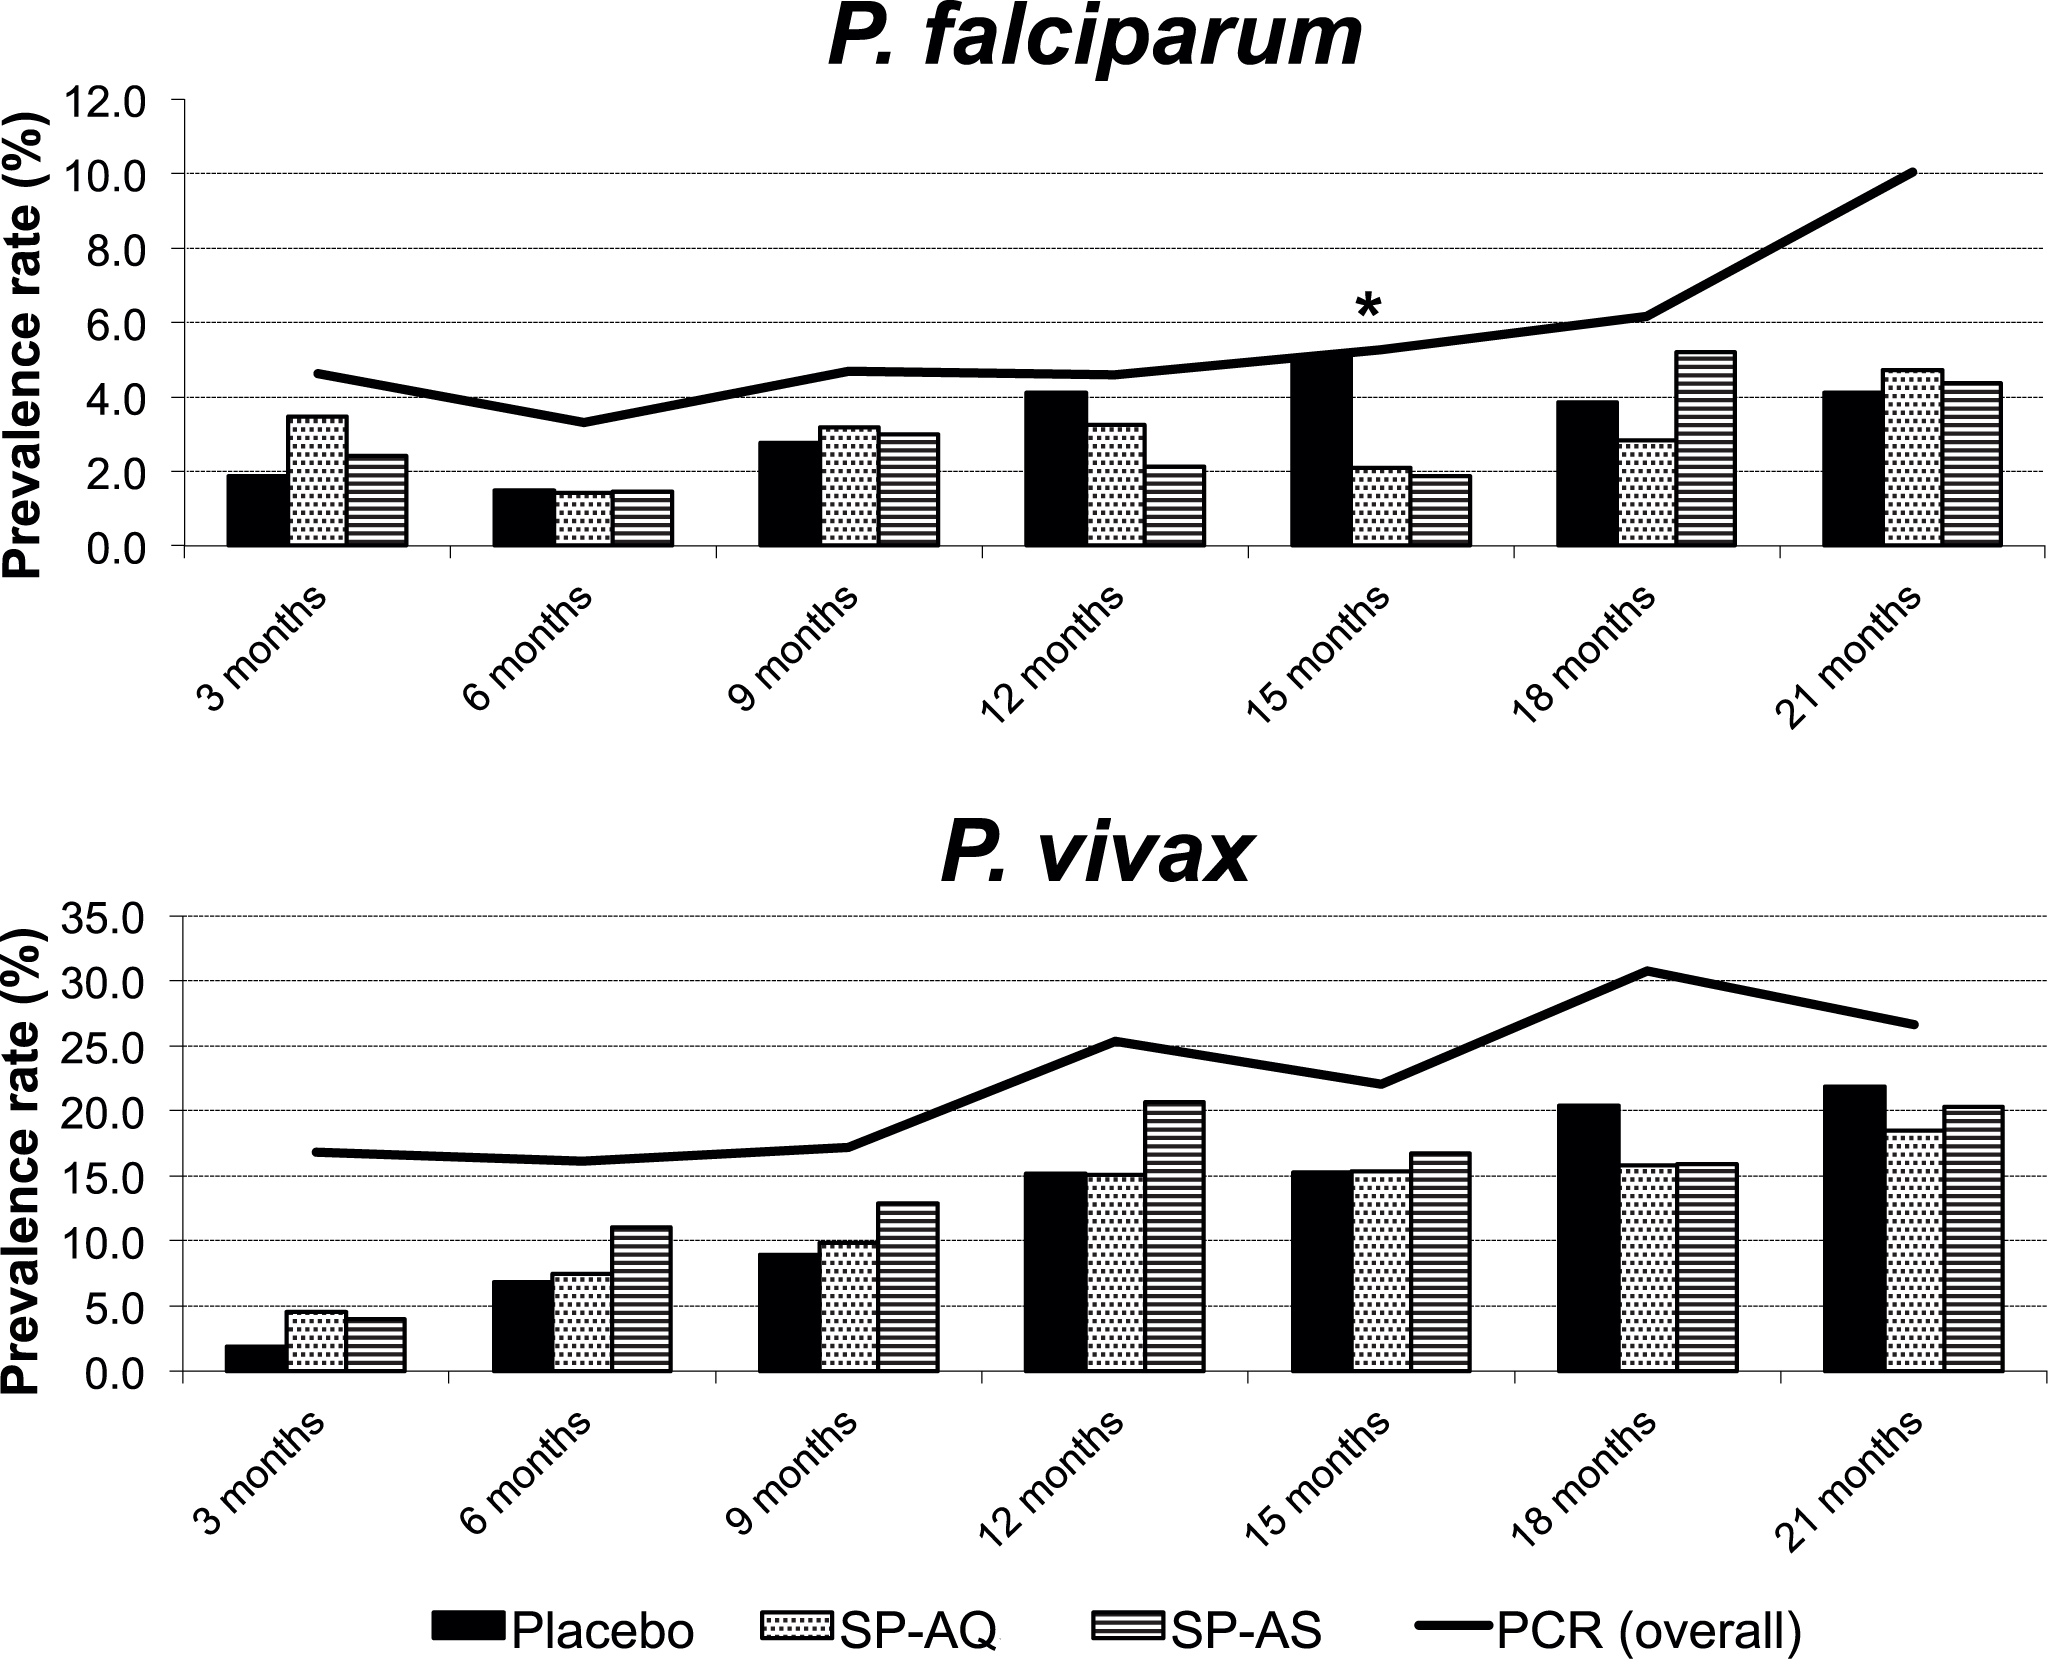 Prevalence of <i>P. falciparum</i> and <i>P. vivax</i> infections during follow-up by treatment group (light microscopy) and overall (PCR).